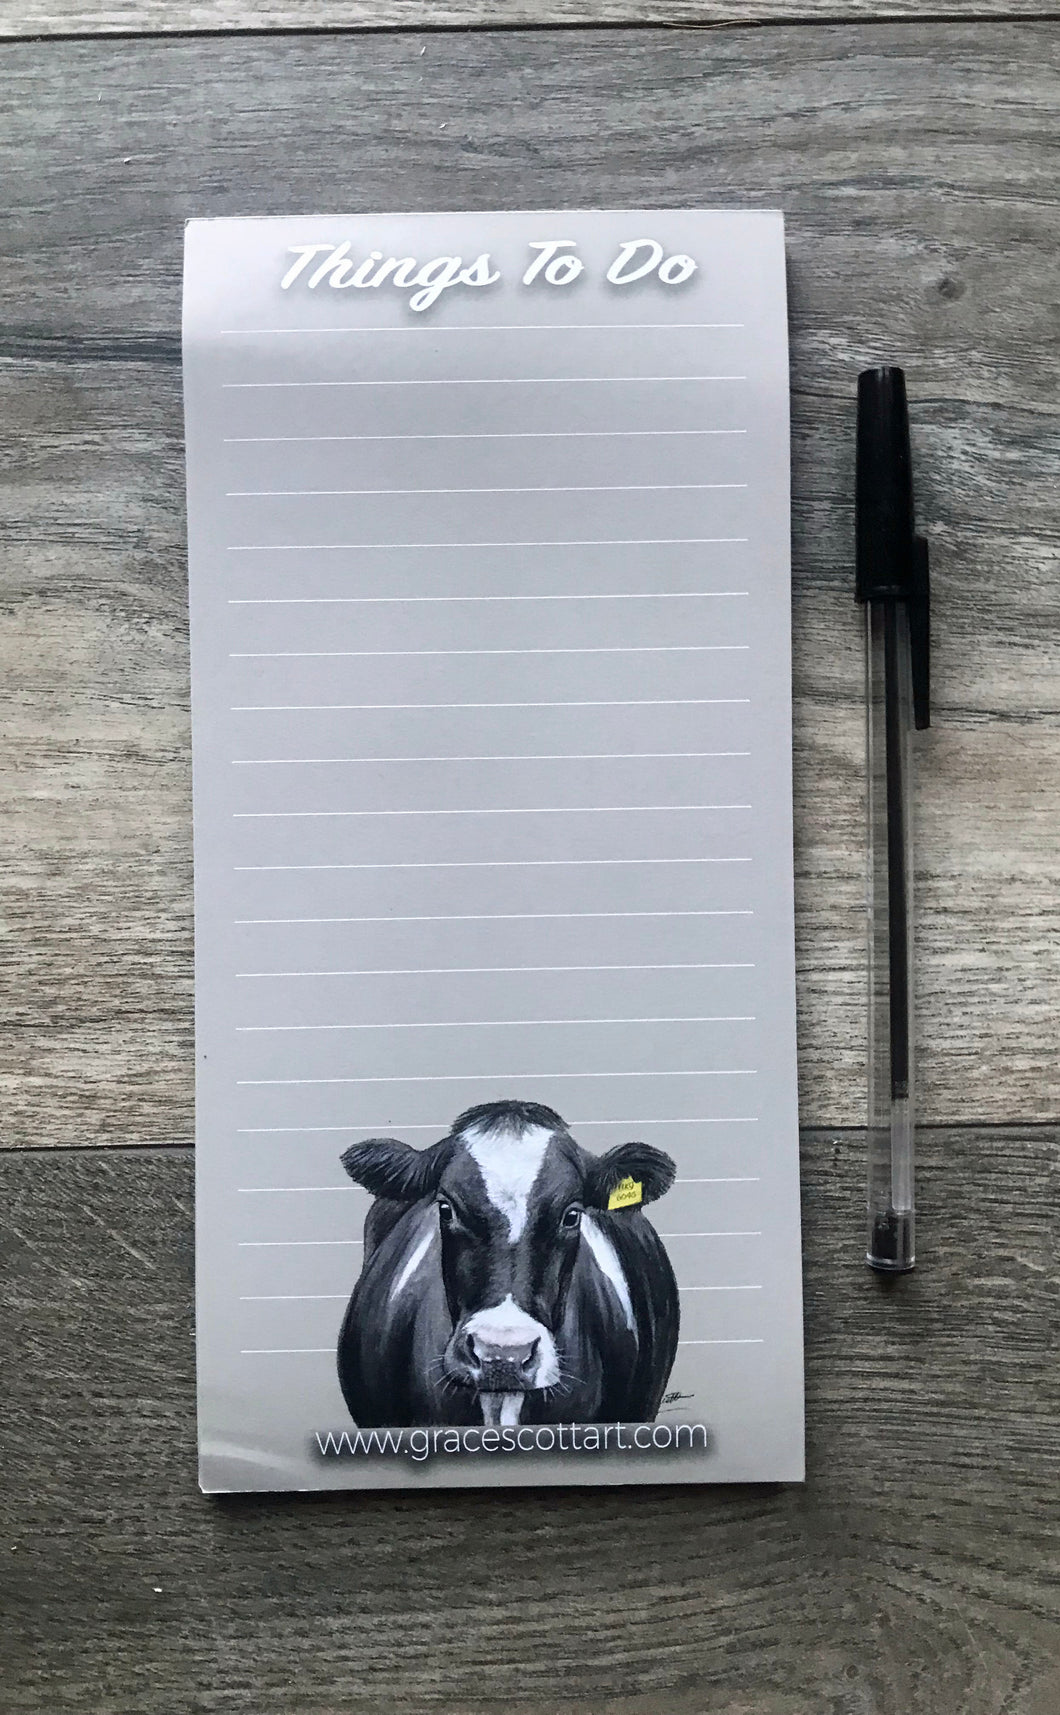 Cow with tag to do list notepad